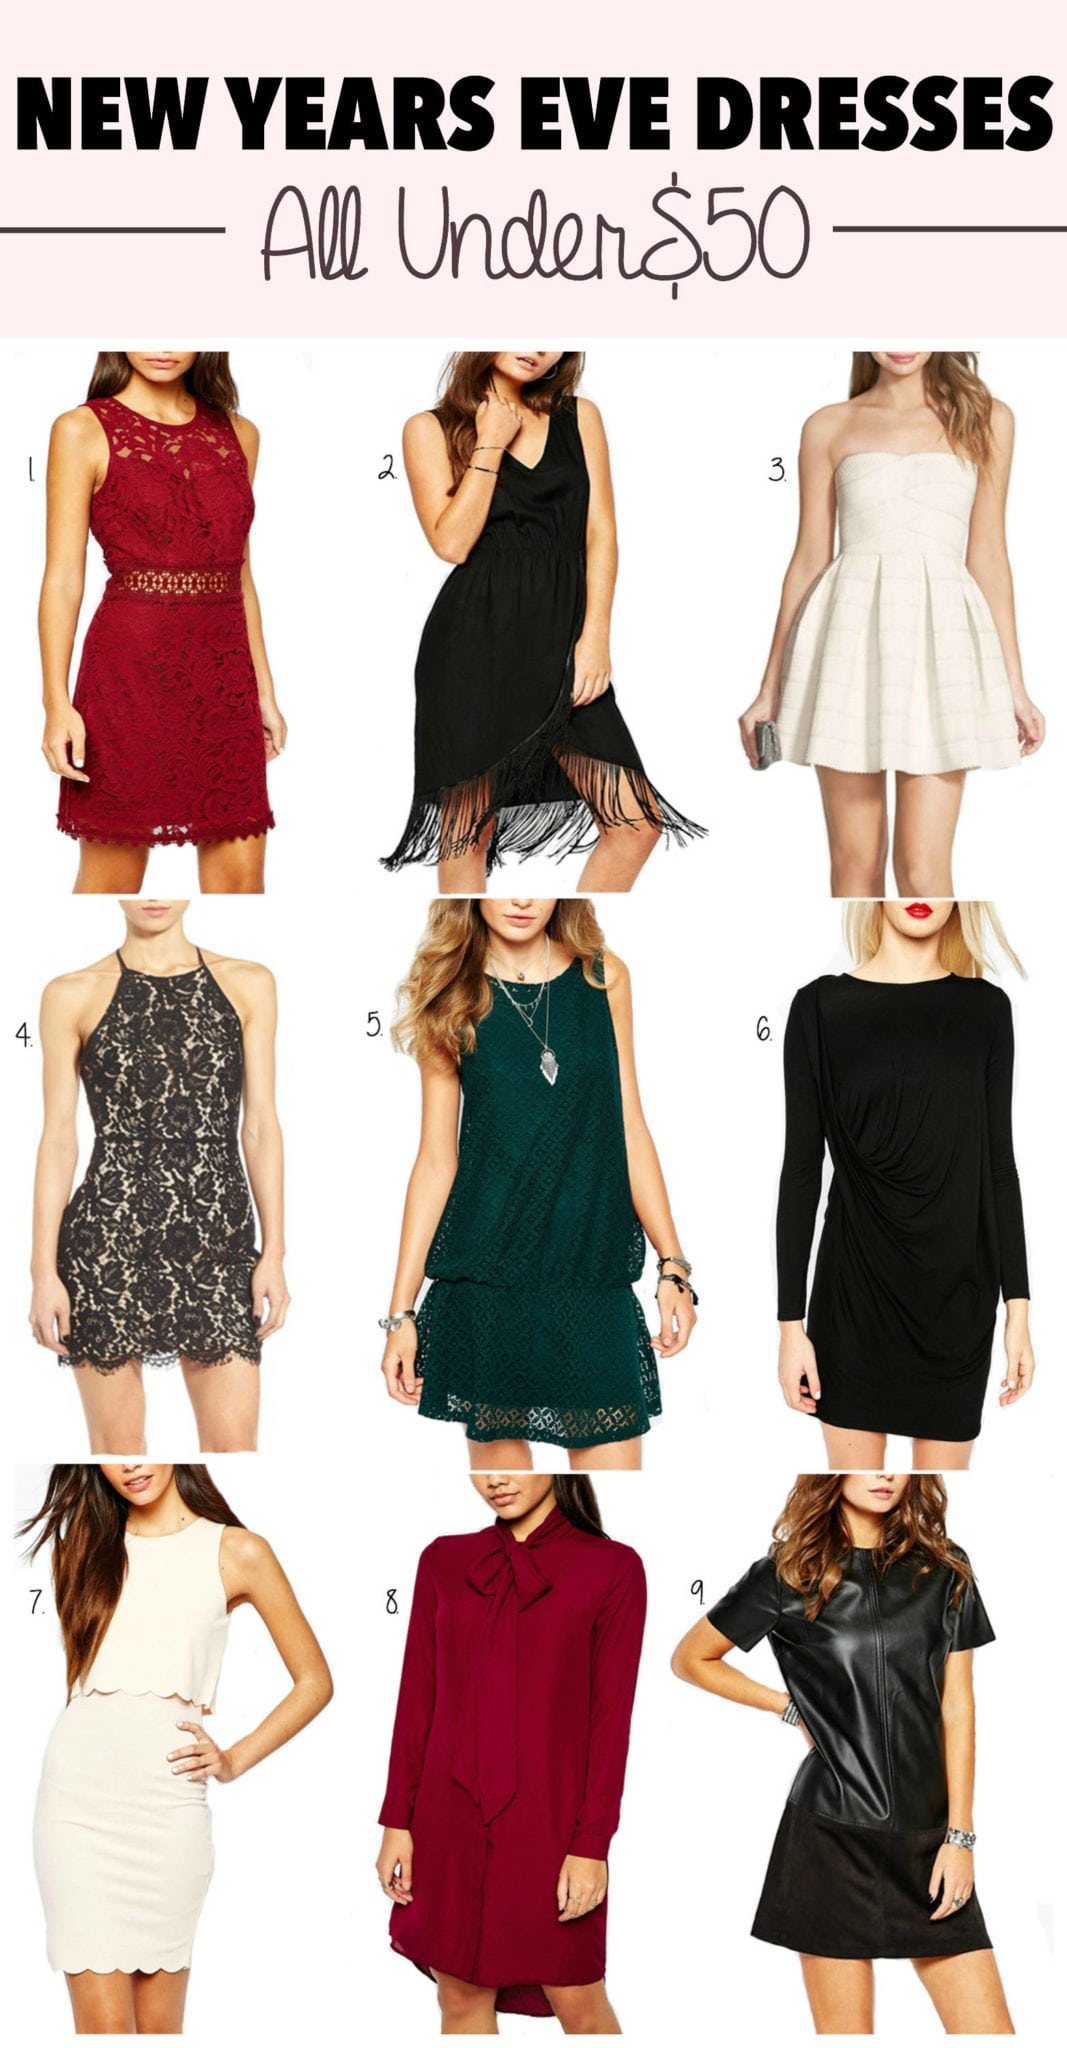 2e24d0cd29c3 What to Wear for Your Parties This New Years Eve